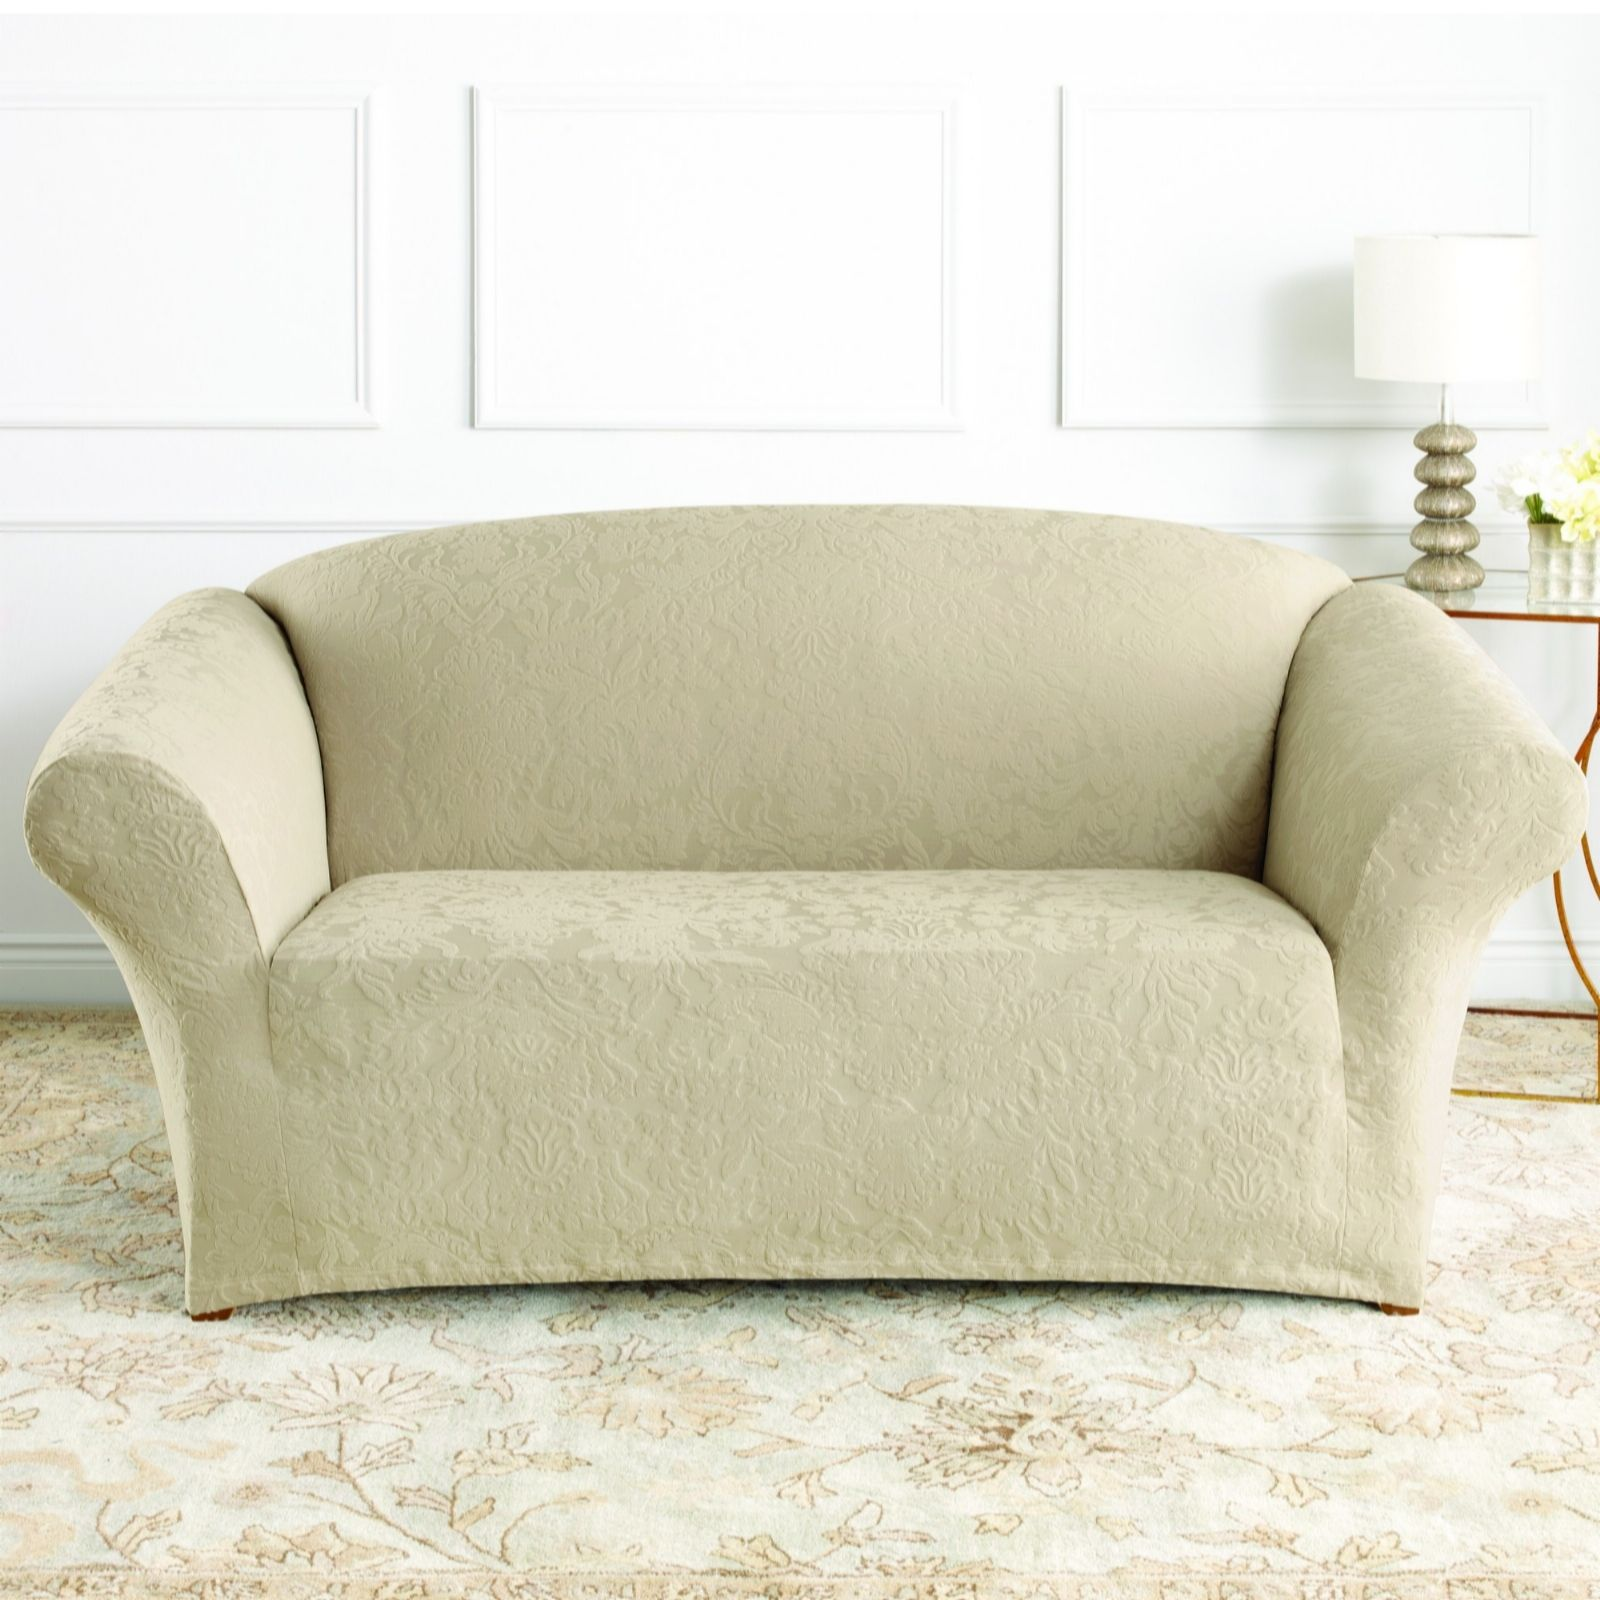 recliner sofa covers uk cream leather gumtree london sure fit stretch review home co